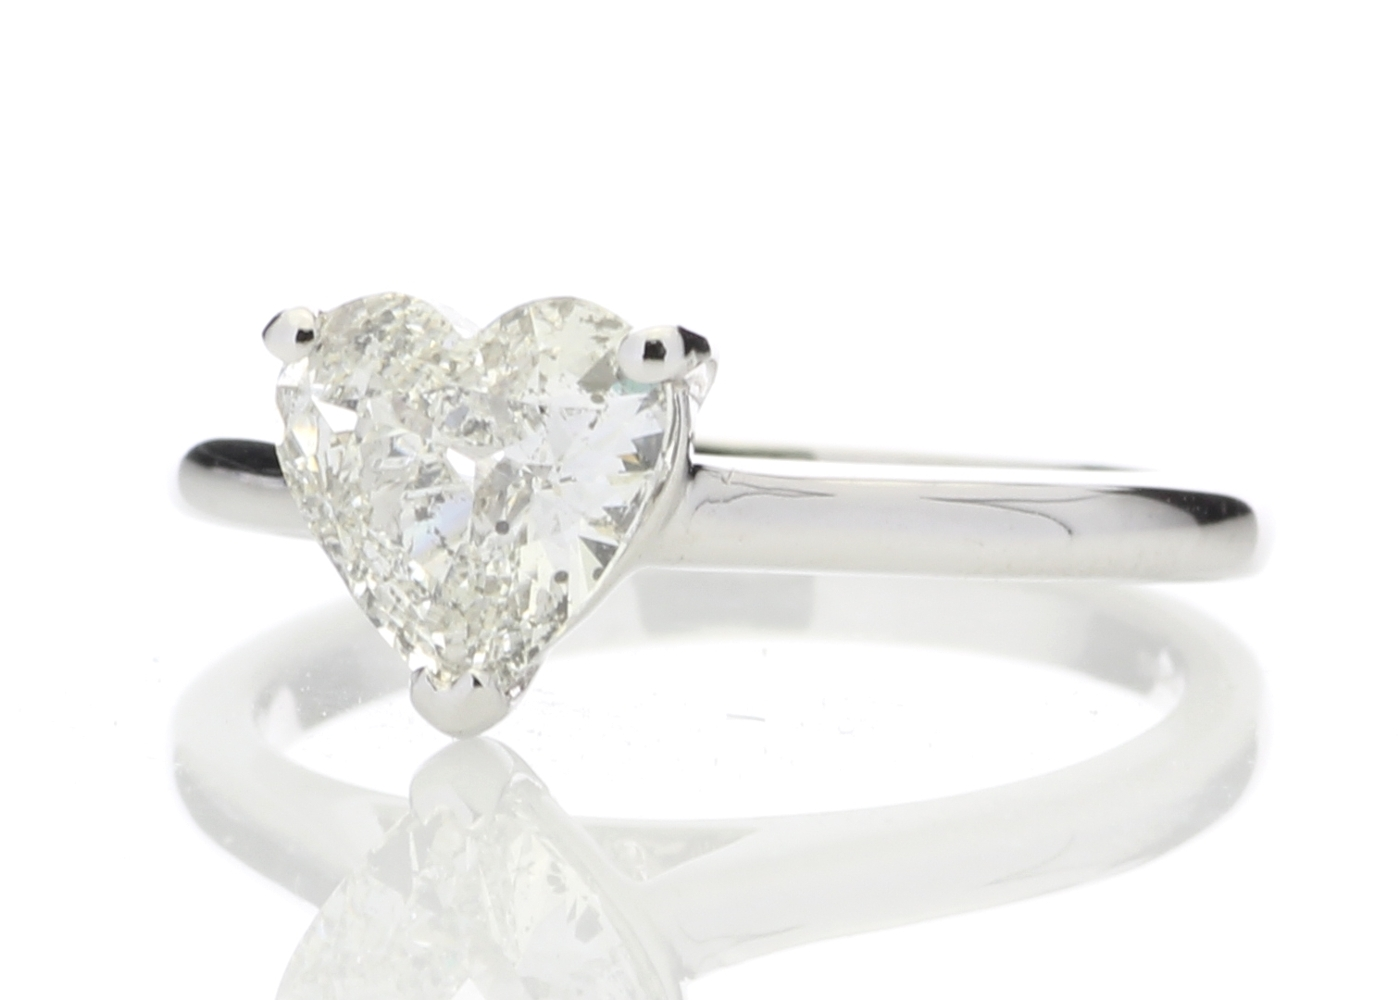 Lot 28 - 18ct White Gold Single Stone Heart Cut Diamond Ring 1.04 Carats